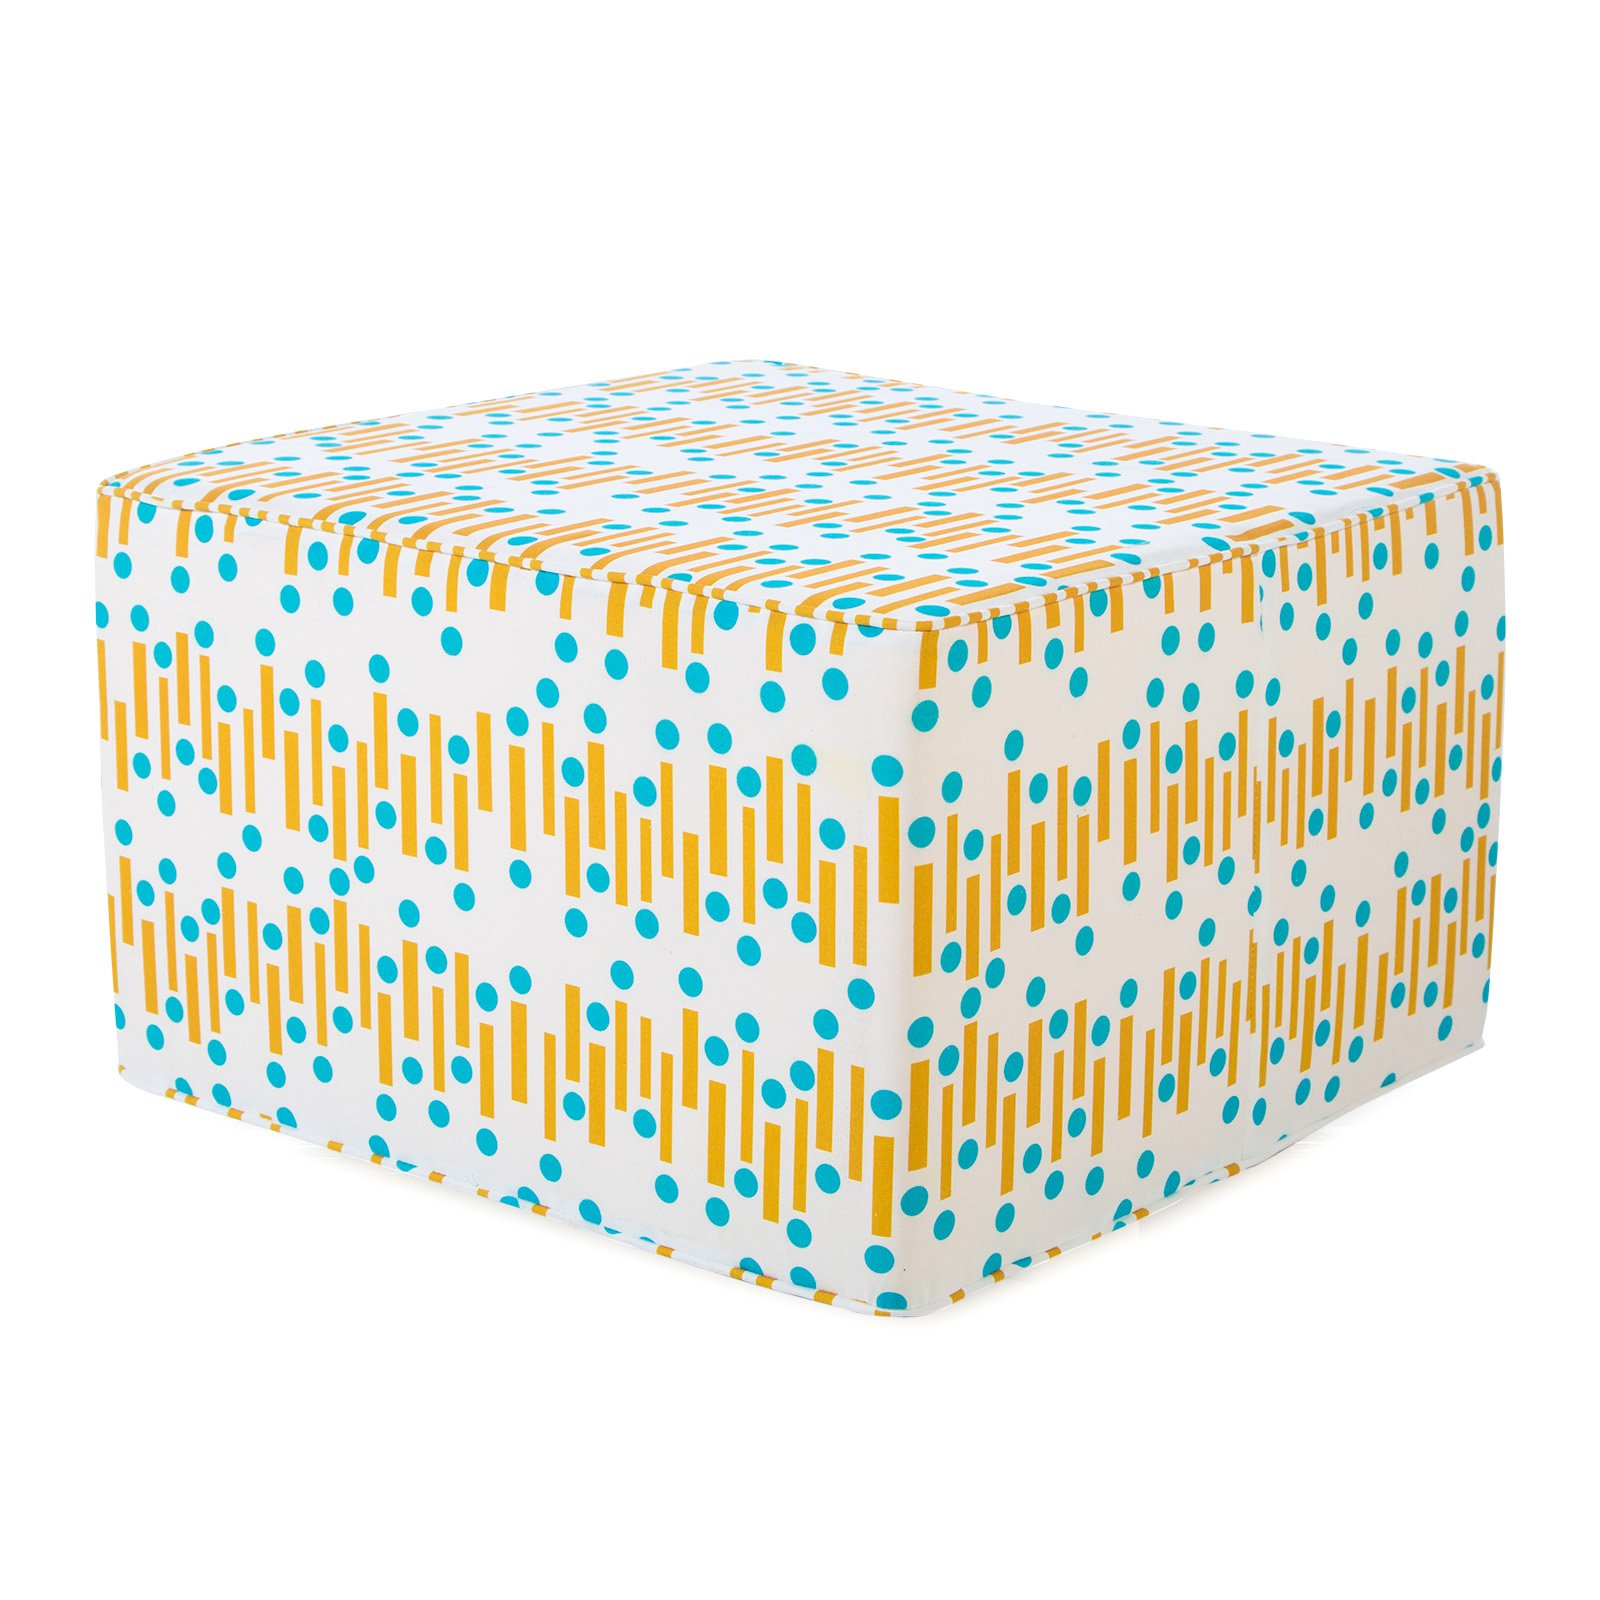 Coral Coast Mid-Century Modern 25 in. Square Pouf Outdoor Ottoman